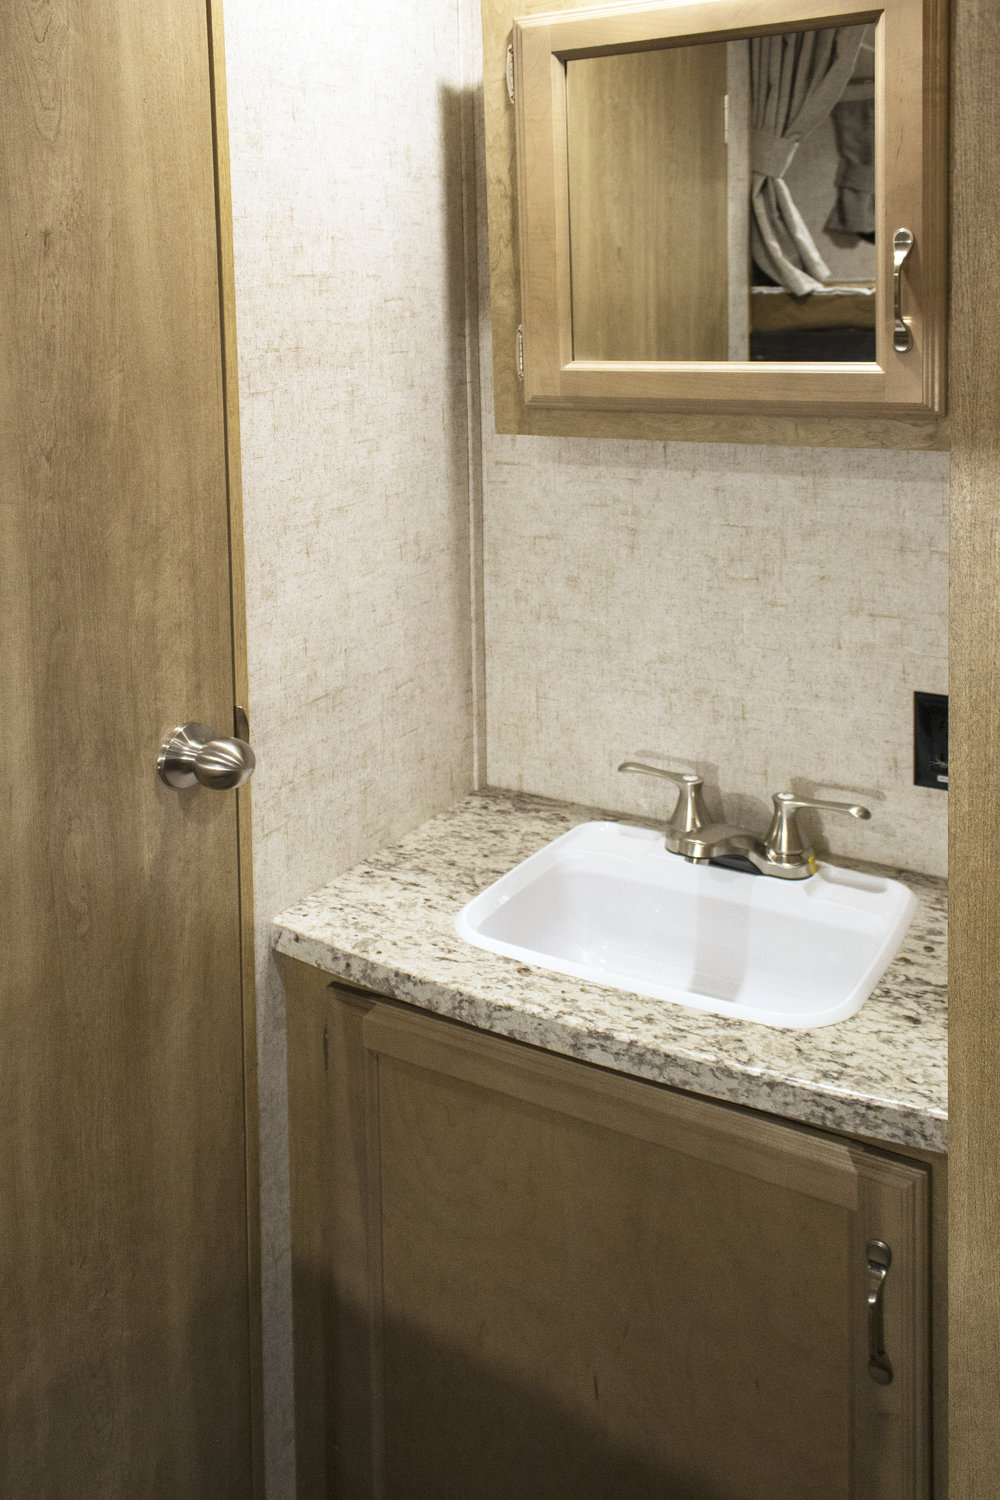 26 BH Bathroom Sink and Cabinet.jpg